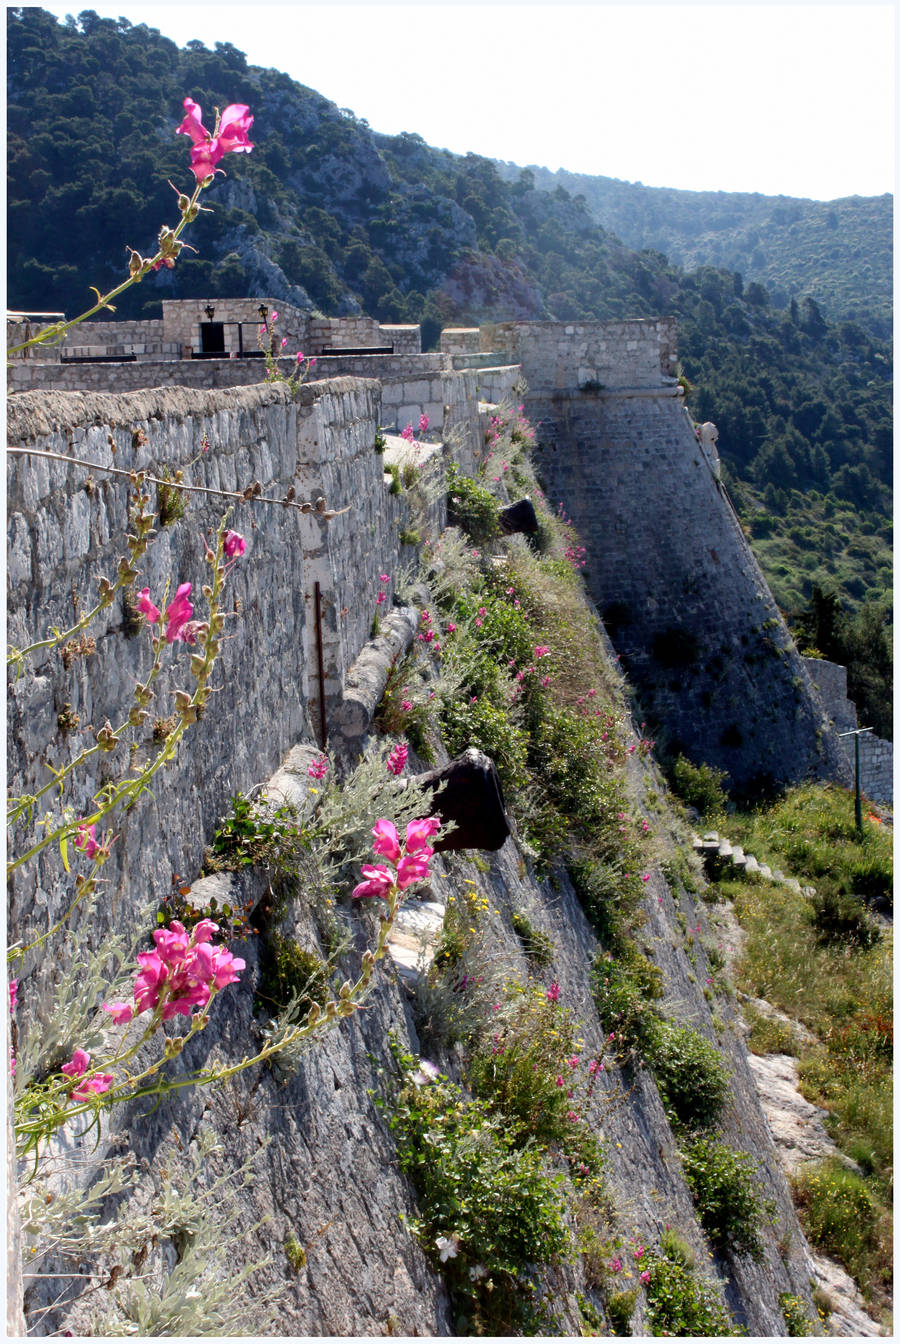 Flower Studded Fortress by kamuidestiny